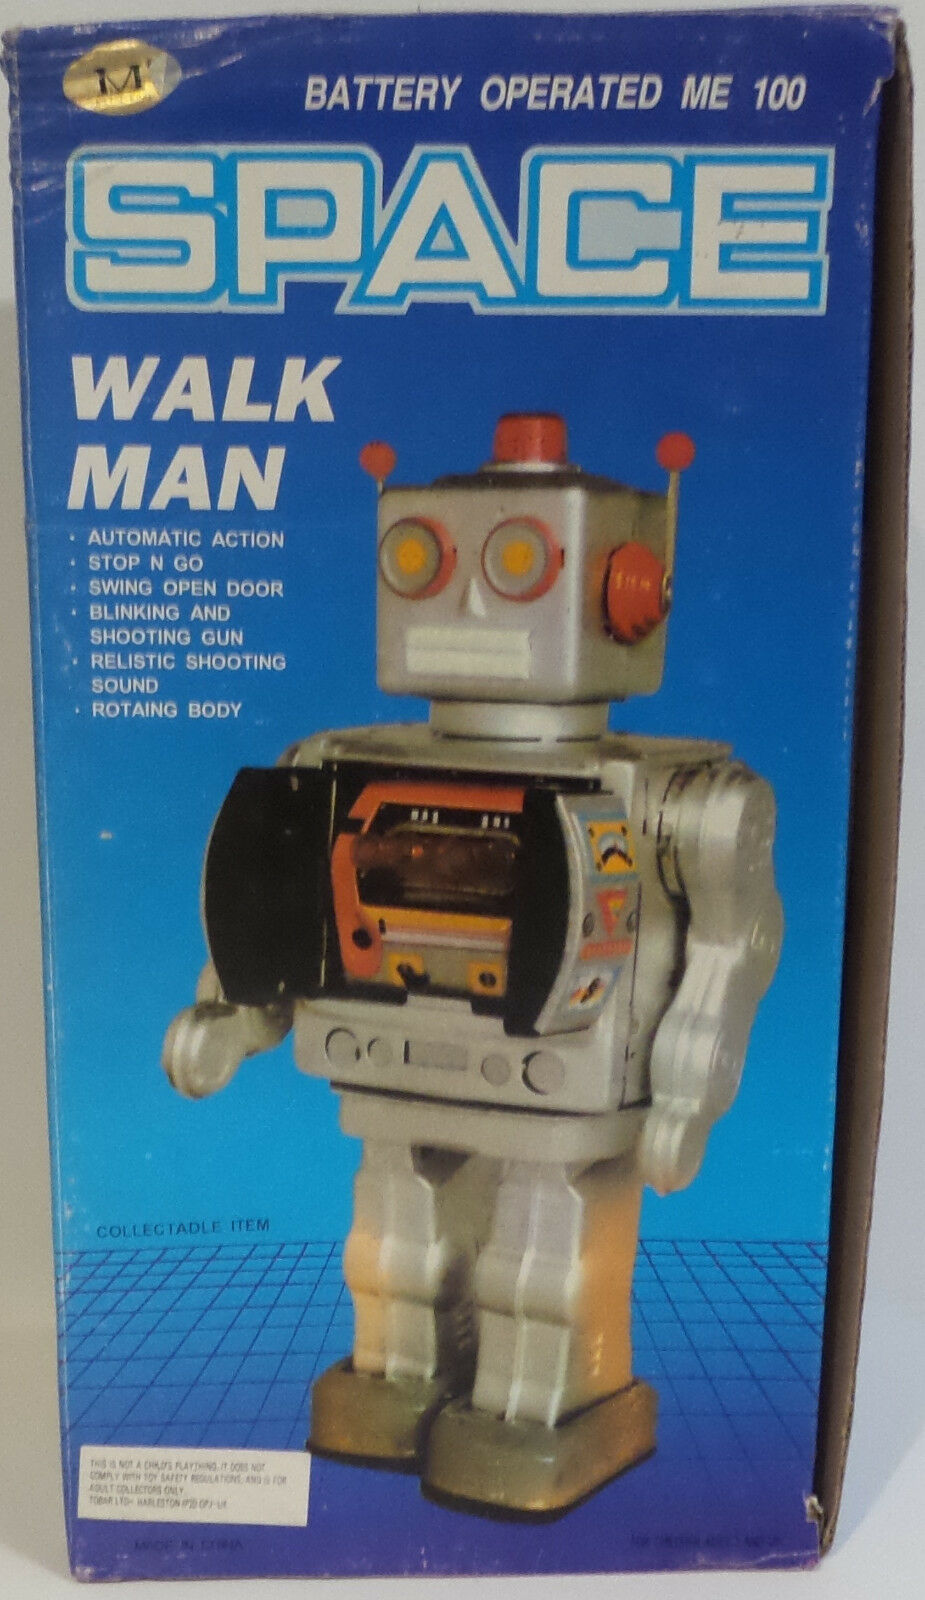 ROBOTS   BATTERY OPERATED SPACE WALK MAN MADE BY ME